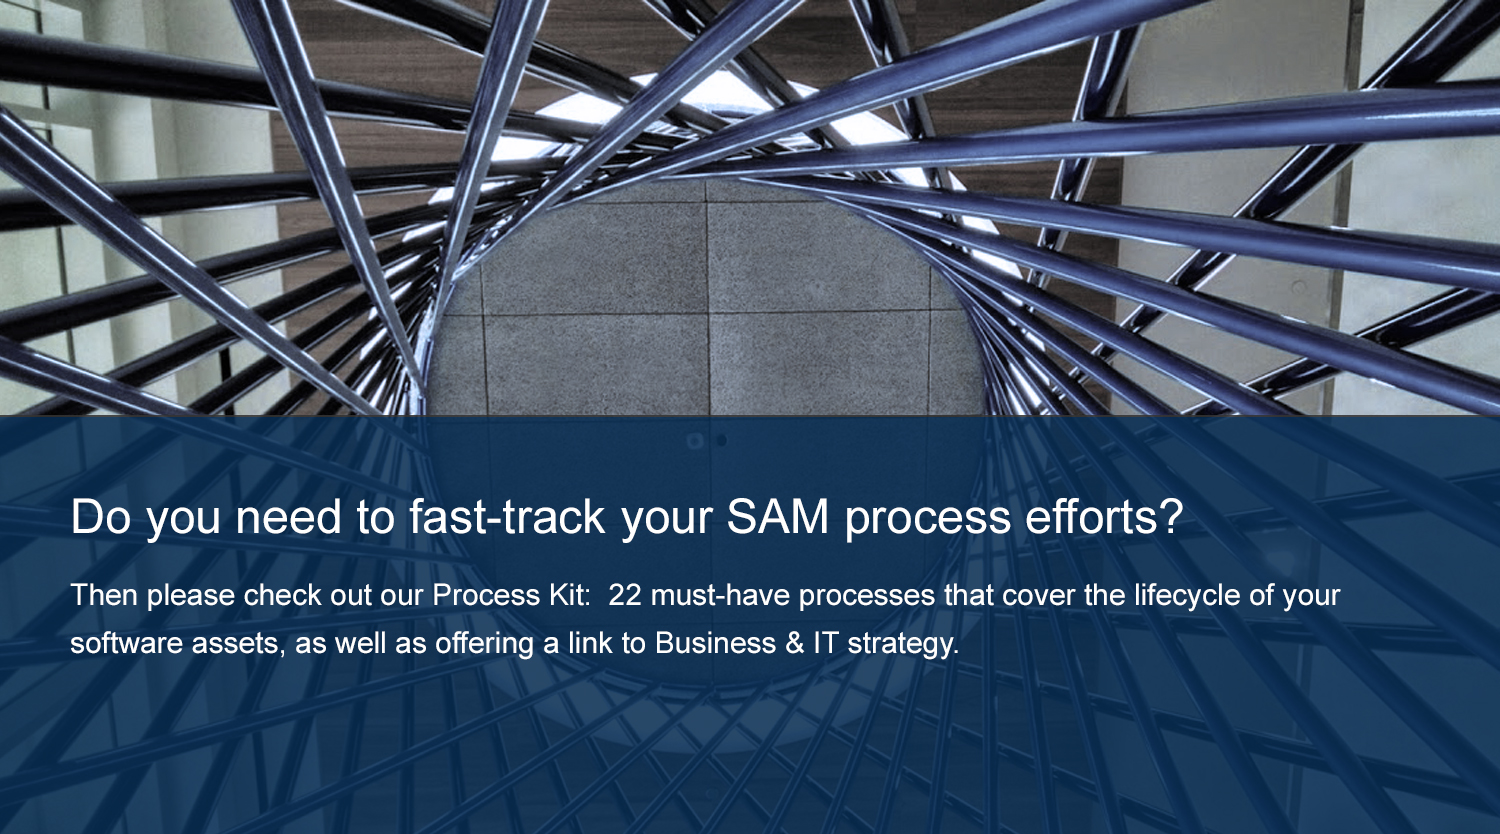 Do you need to fast-track your SAM process efforts?